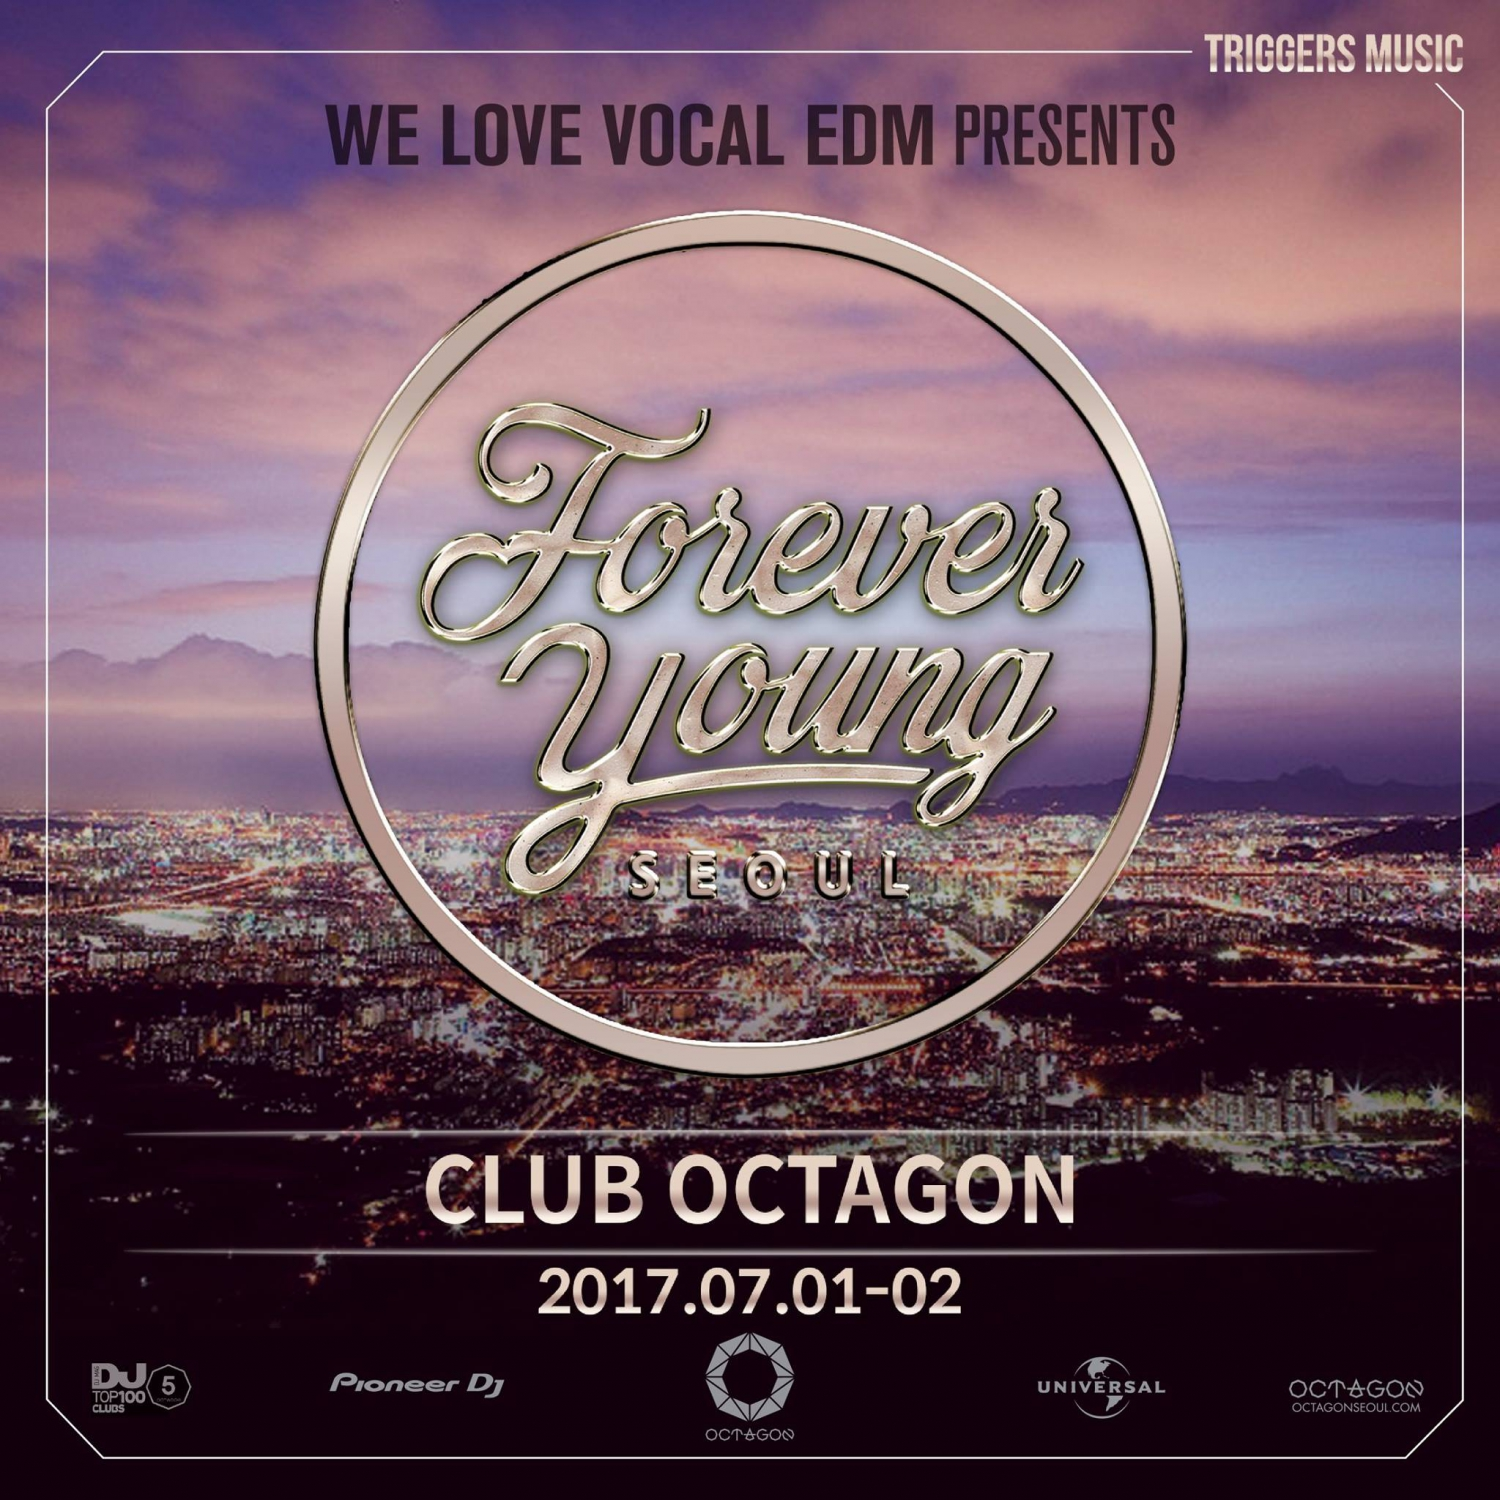 OCTAFEST X FOREVER YOUNG SEOUL